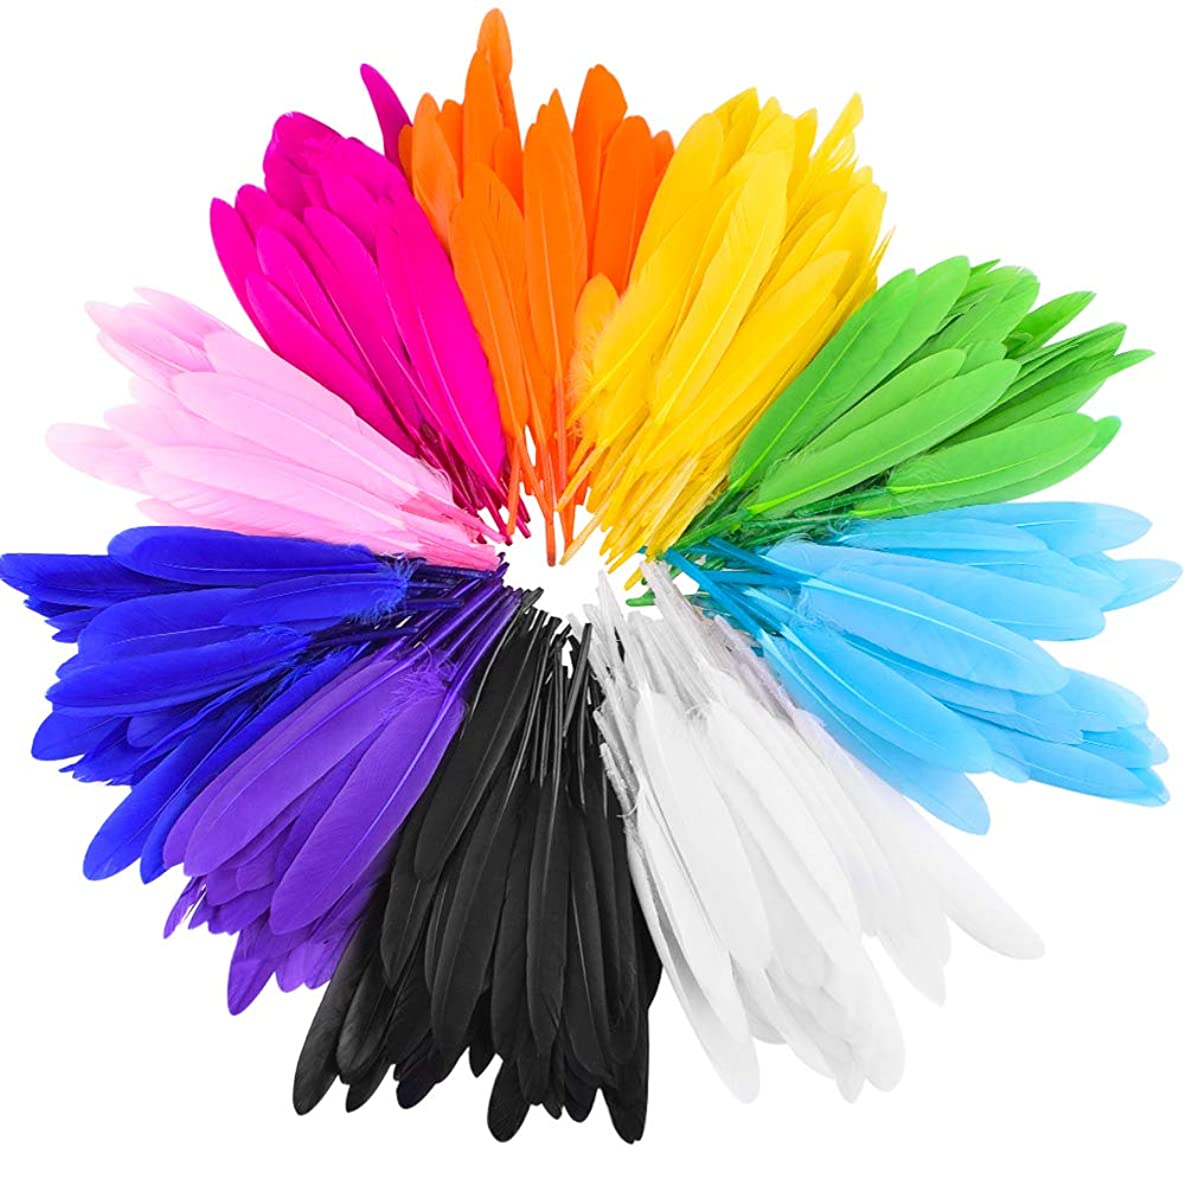 WXJ13 Assorted Goose Feathers 10 Colors Feathers 3-6 Inches for Decoration DIY Craft